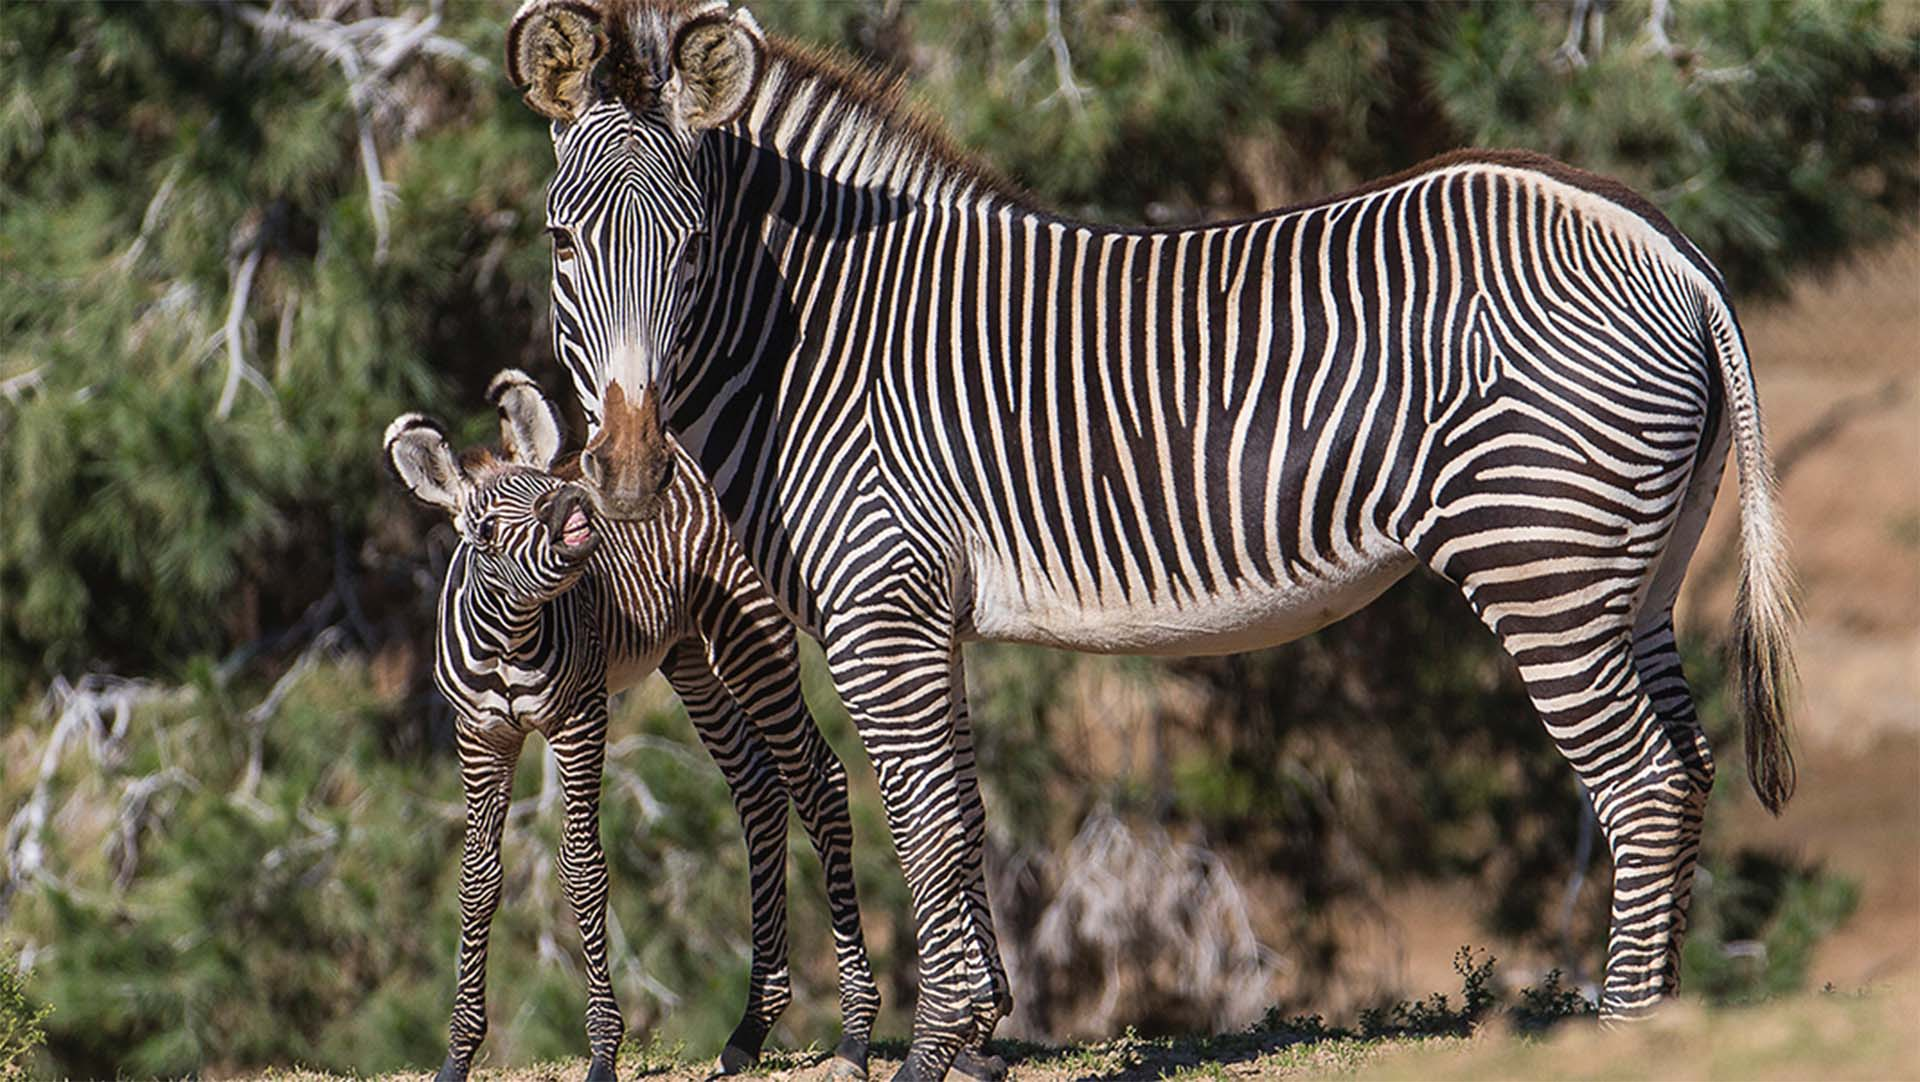 A Zebra Foal Looks At Its Mother To Memorize Her Unique Stripe Pattern